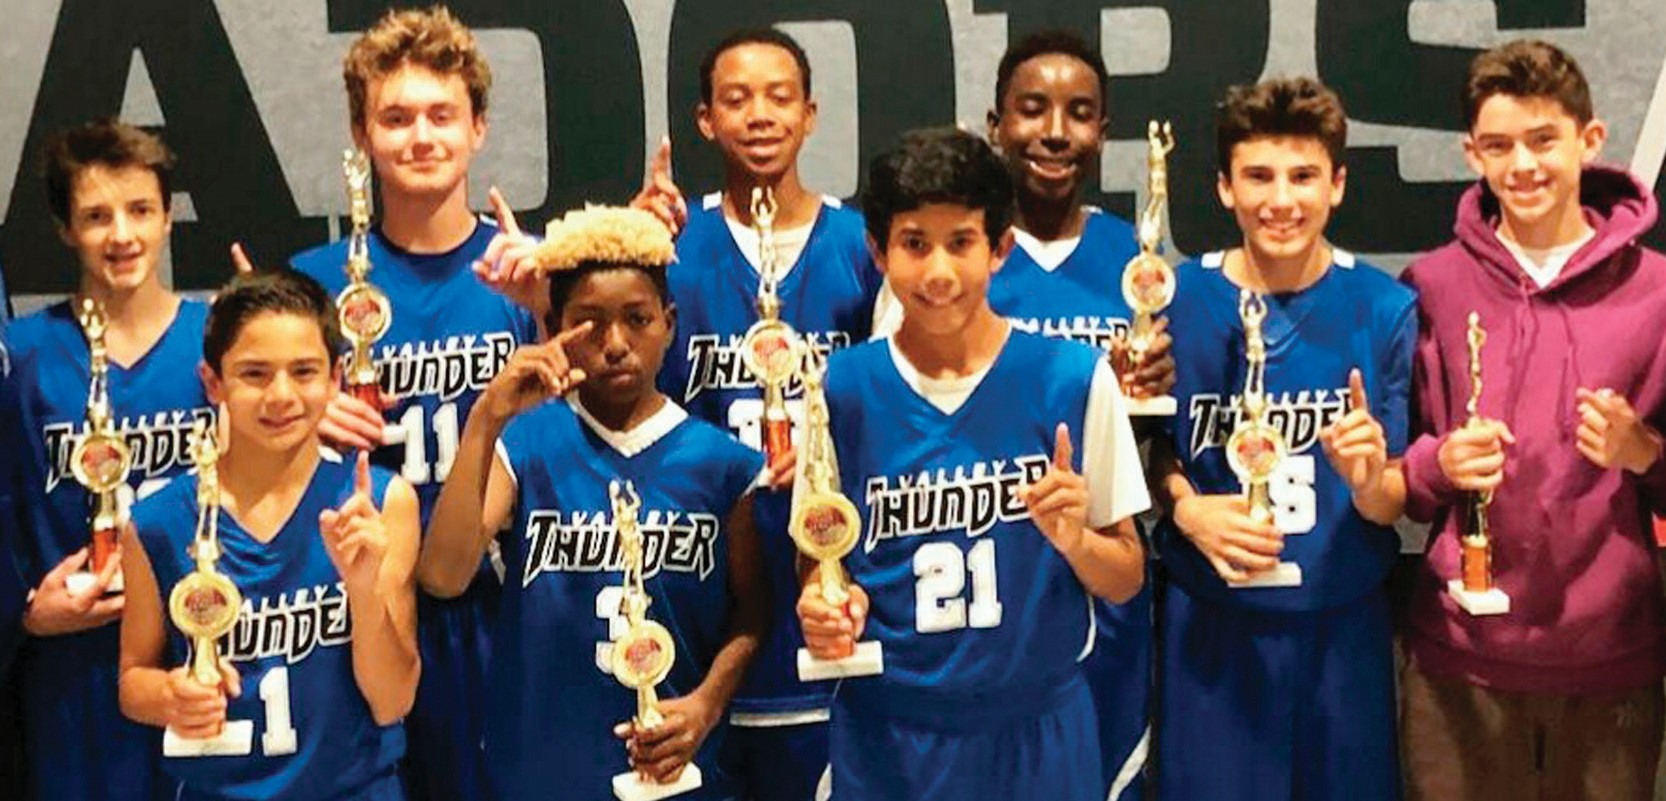 ROLLING THUNDER—Valley Thunder Basketball Club's U-14 team wins the division championship in the ARC Fall League. The team comprises players from Oak Park, Moorpark, Simi Valley, Thousand Oaks and Westlake Village. From left: Justice Nobert, Spencer Lavine, Jacob Jones, Dante Calhoun, Jacob Huggins, Jordan Alomeri, Samson Hall, Max Weiland and Niko Limbert.